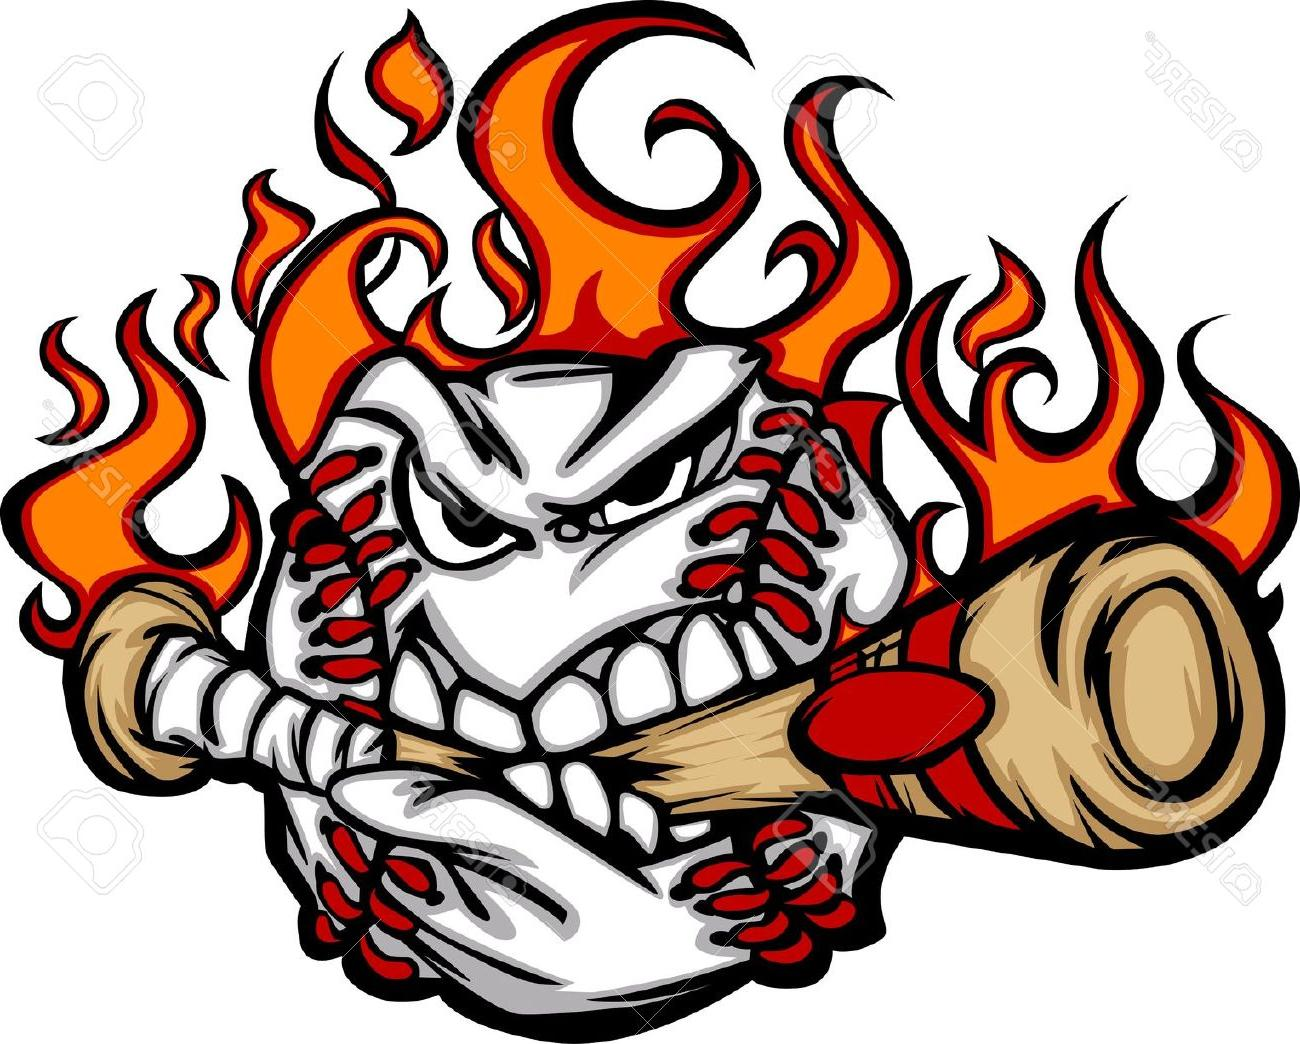 Baseball bat on fire clipart jpg black and white library Softball With Flames | Free download best Softball With Flames on ... jpg black and white library